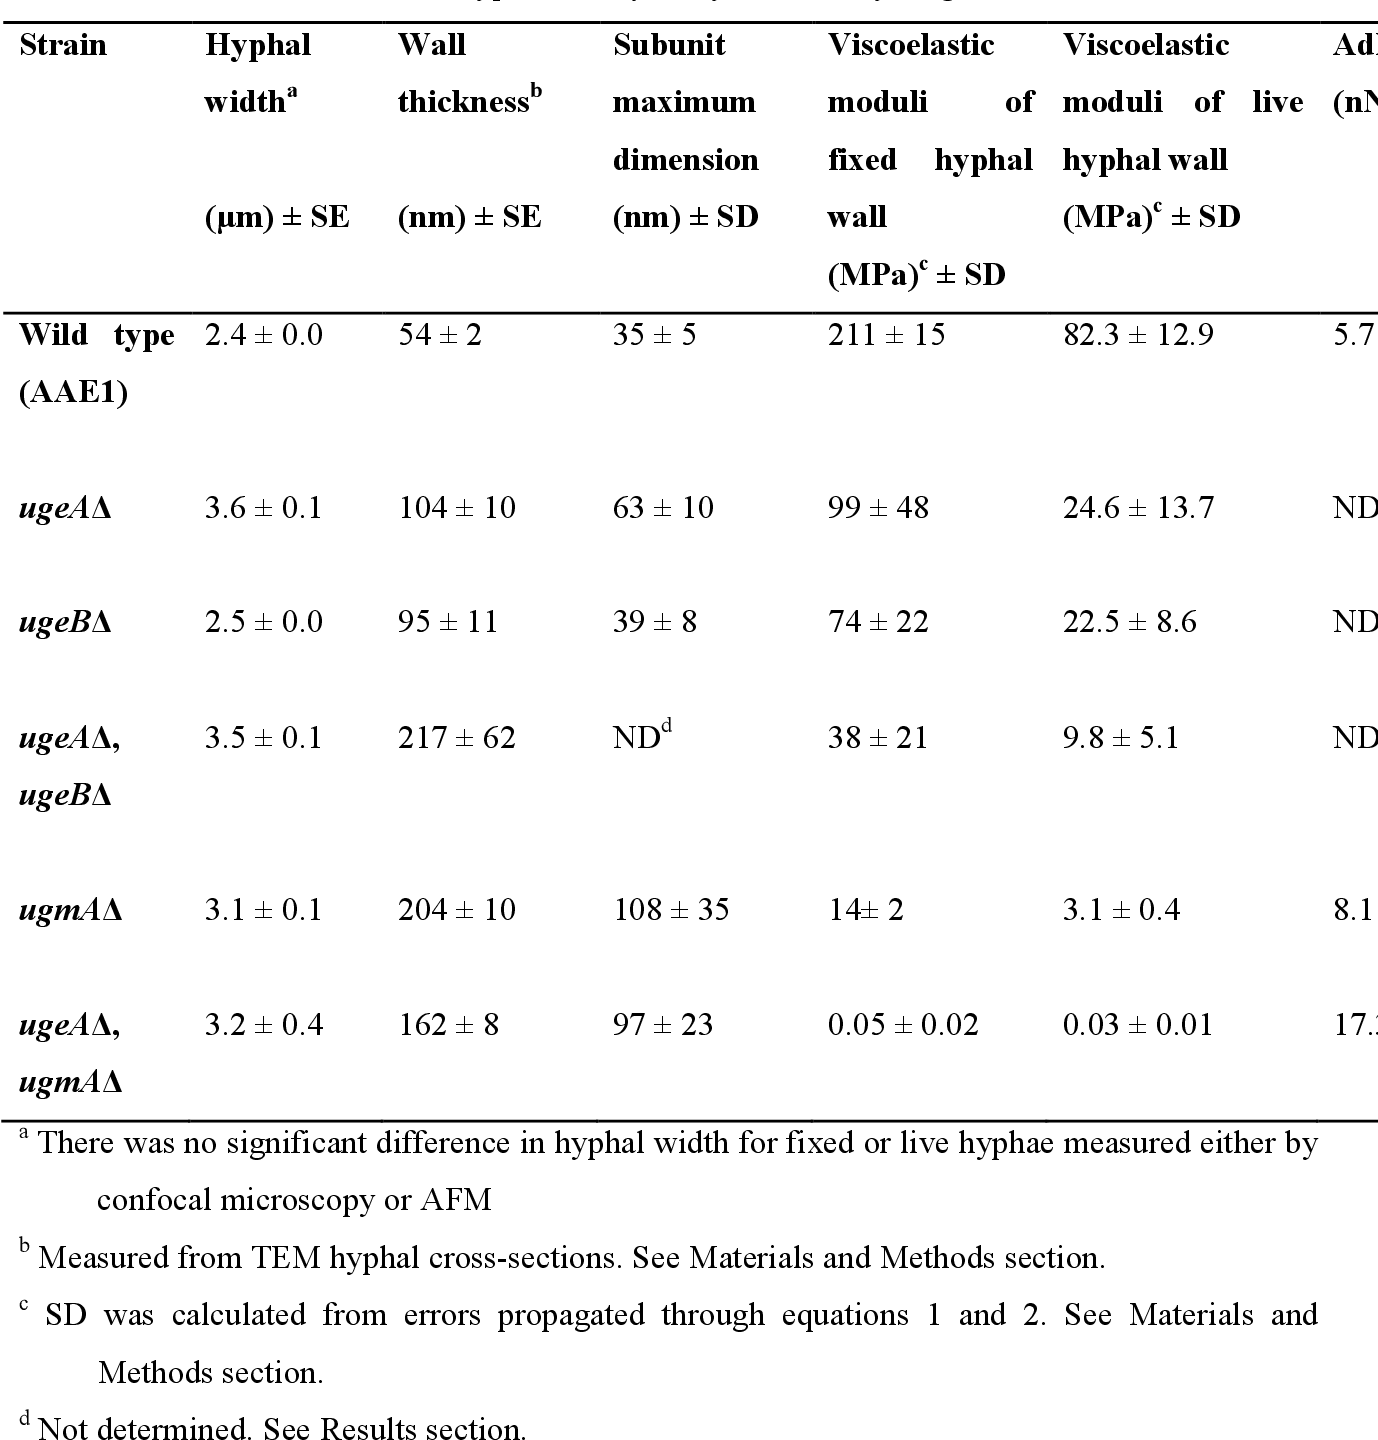 Table 1. Morphological characteristics, maximum dimension of surface subunits, and cell wall viscoelastic moduli of wild type and Galf biosynthesis enzyme gene deletion strains.